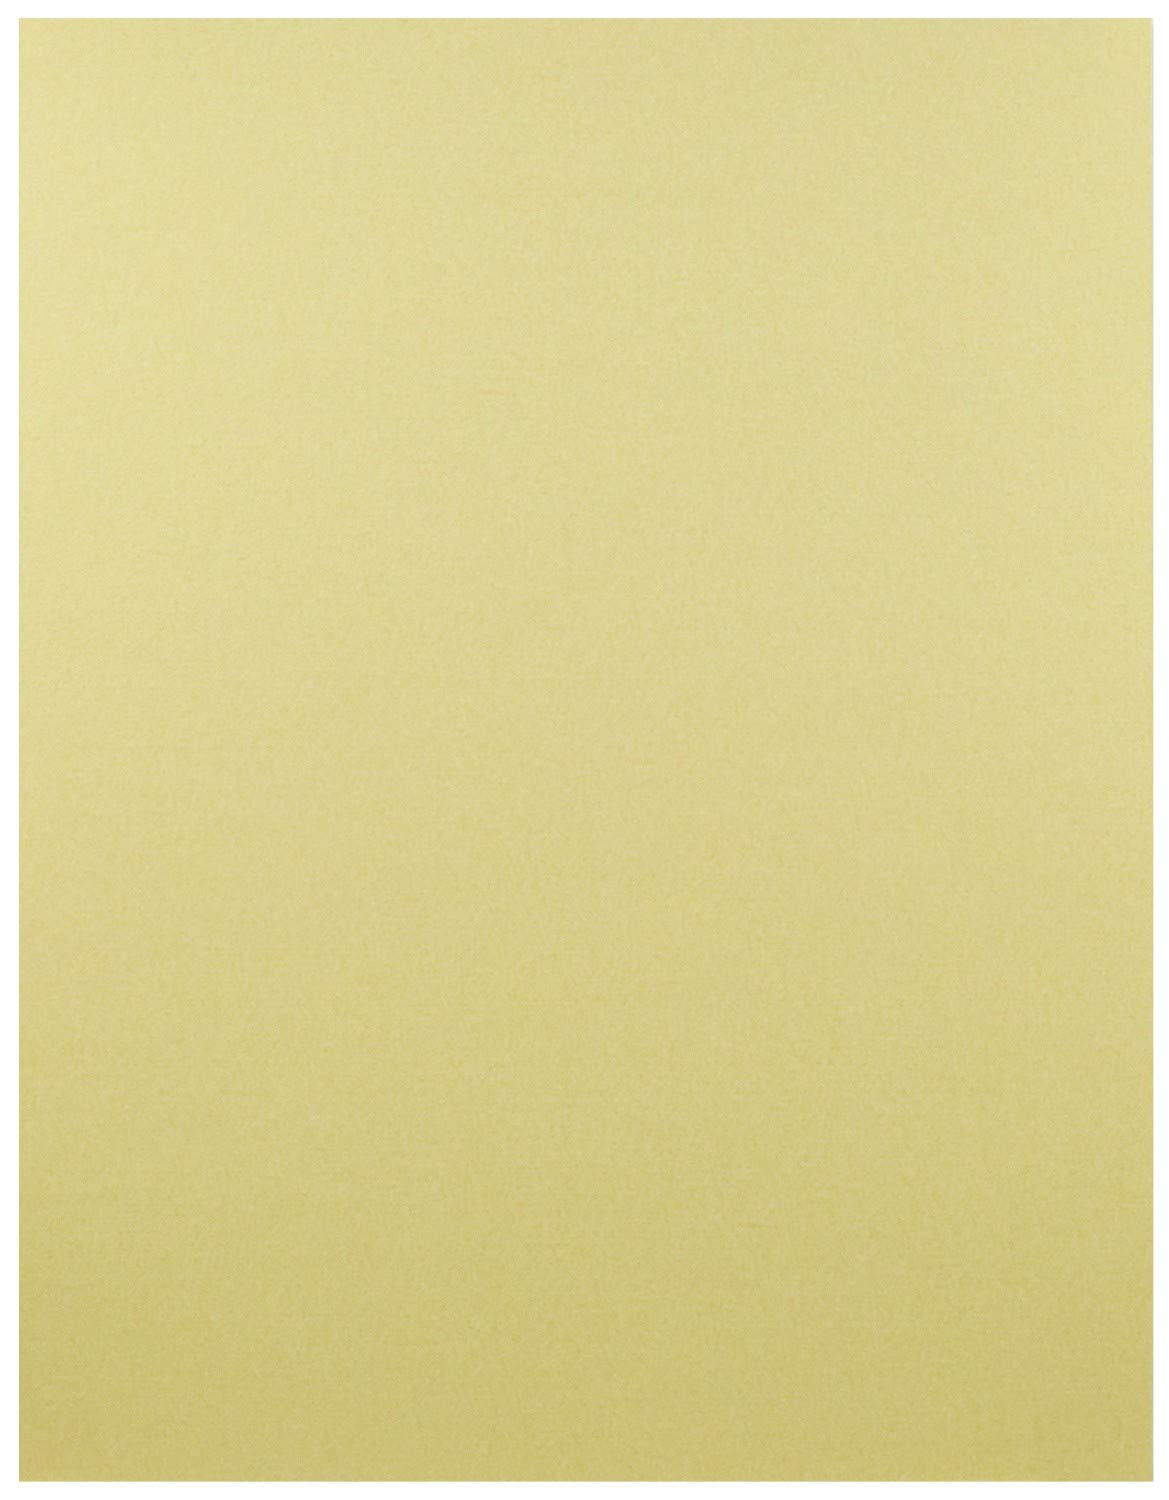 Shimmer Light Pale Gold 8-1/2-x-14 32T Lightweight Multi-use Paper 200-pk - PaperPapers 2pBasics 118 GSM (32/80lb Text) Legal Size Everyday Metallic Paper for Professionals, Designers, and Crafters by 2pBasics